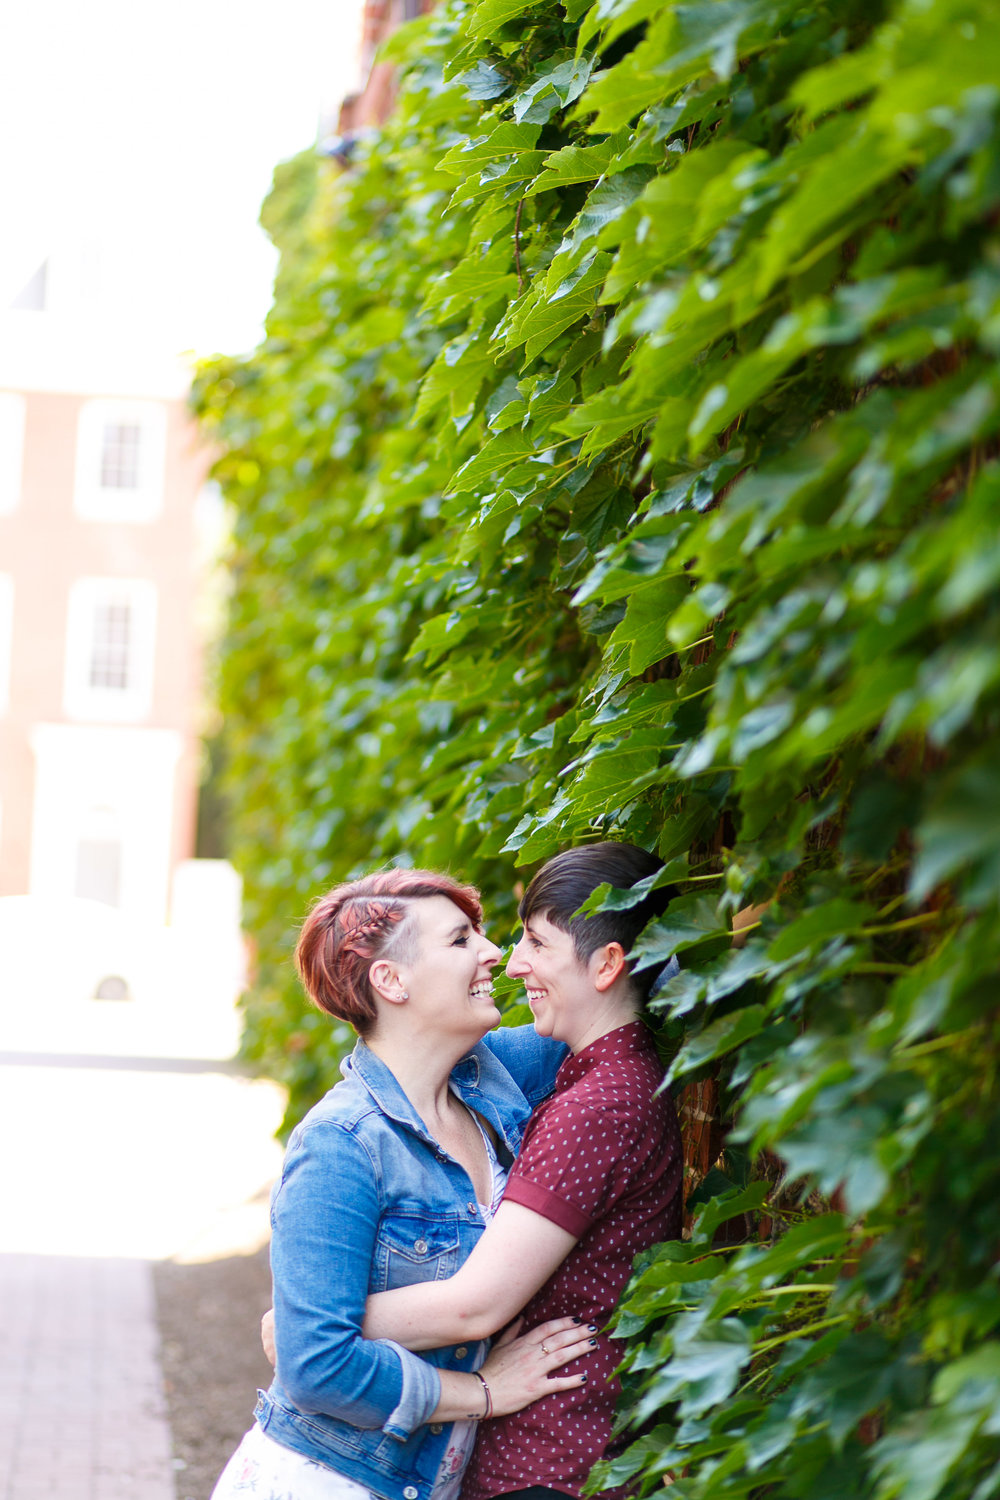 LGBTQ Baltimore Engagement Session with lesbian photographer Swiger Photography32.jpg